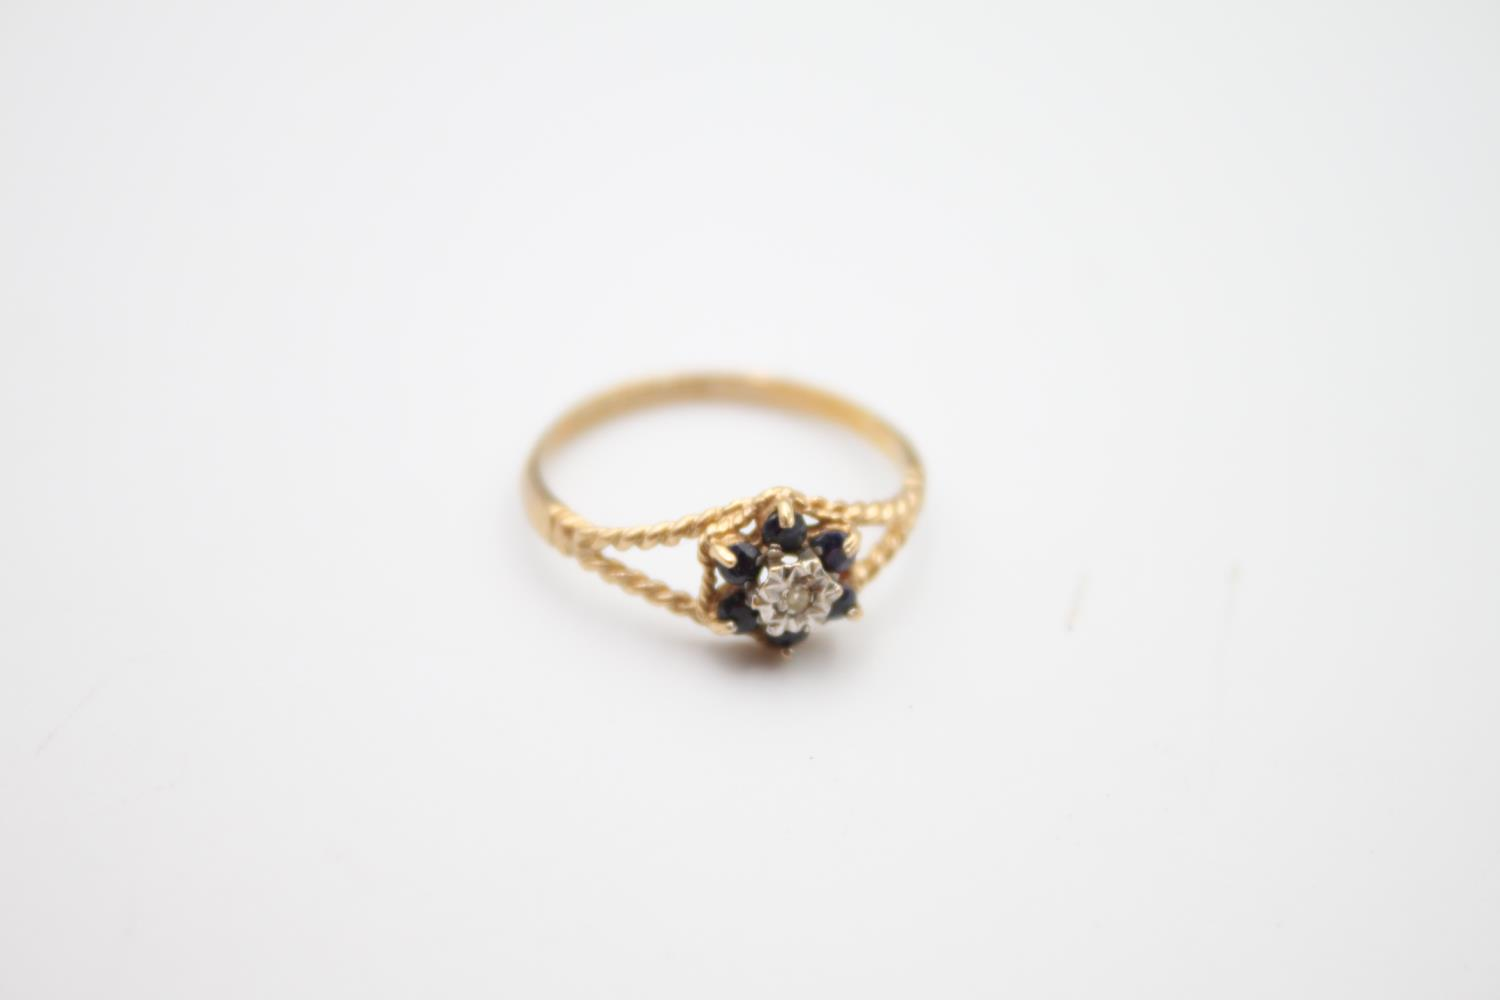 2 x 9ct gold diamond & sapphire rings inc cluster 3.6g Size K on left & O on right - Image 4 of 5